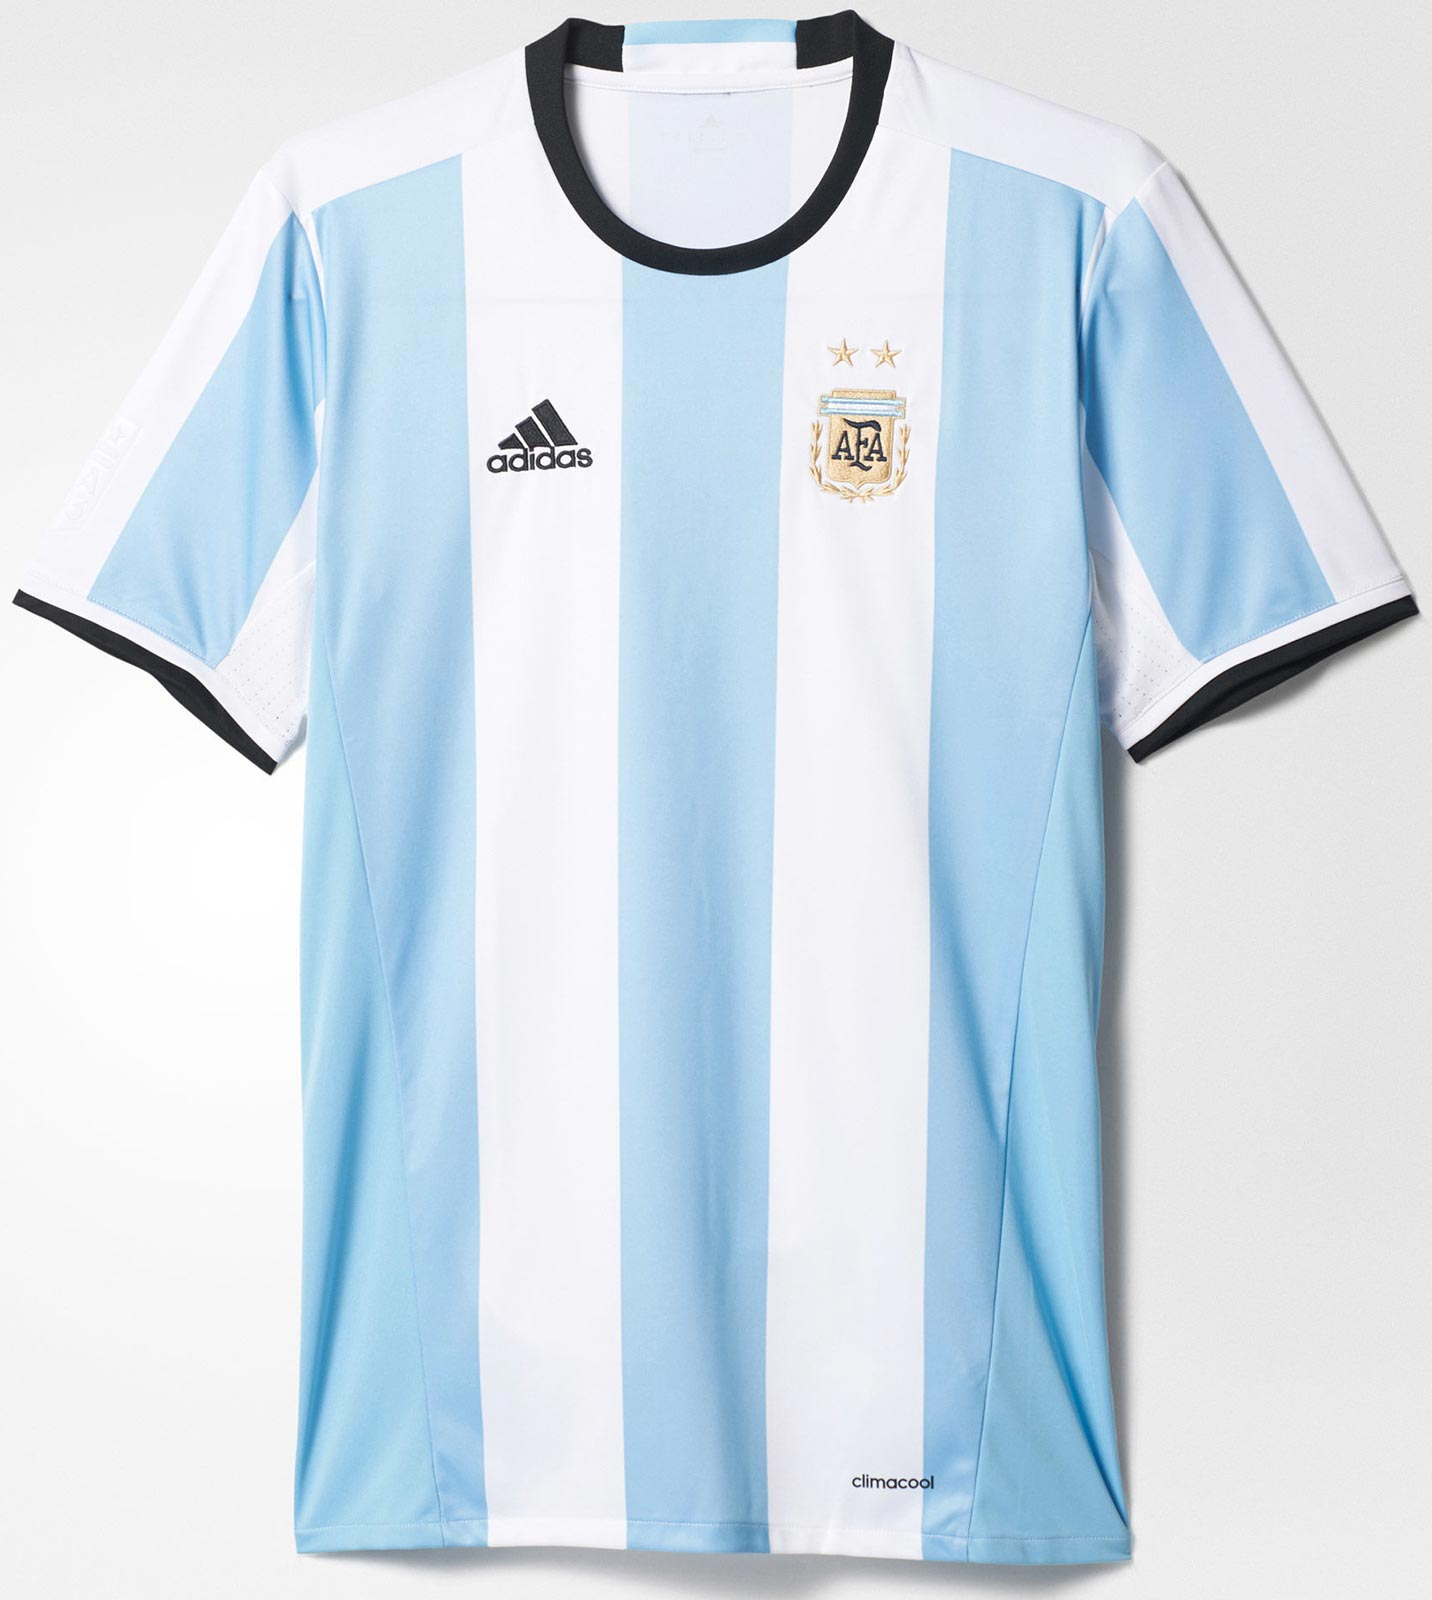 41157527b The five best and worst kits of the Copa America Centenario